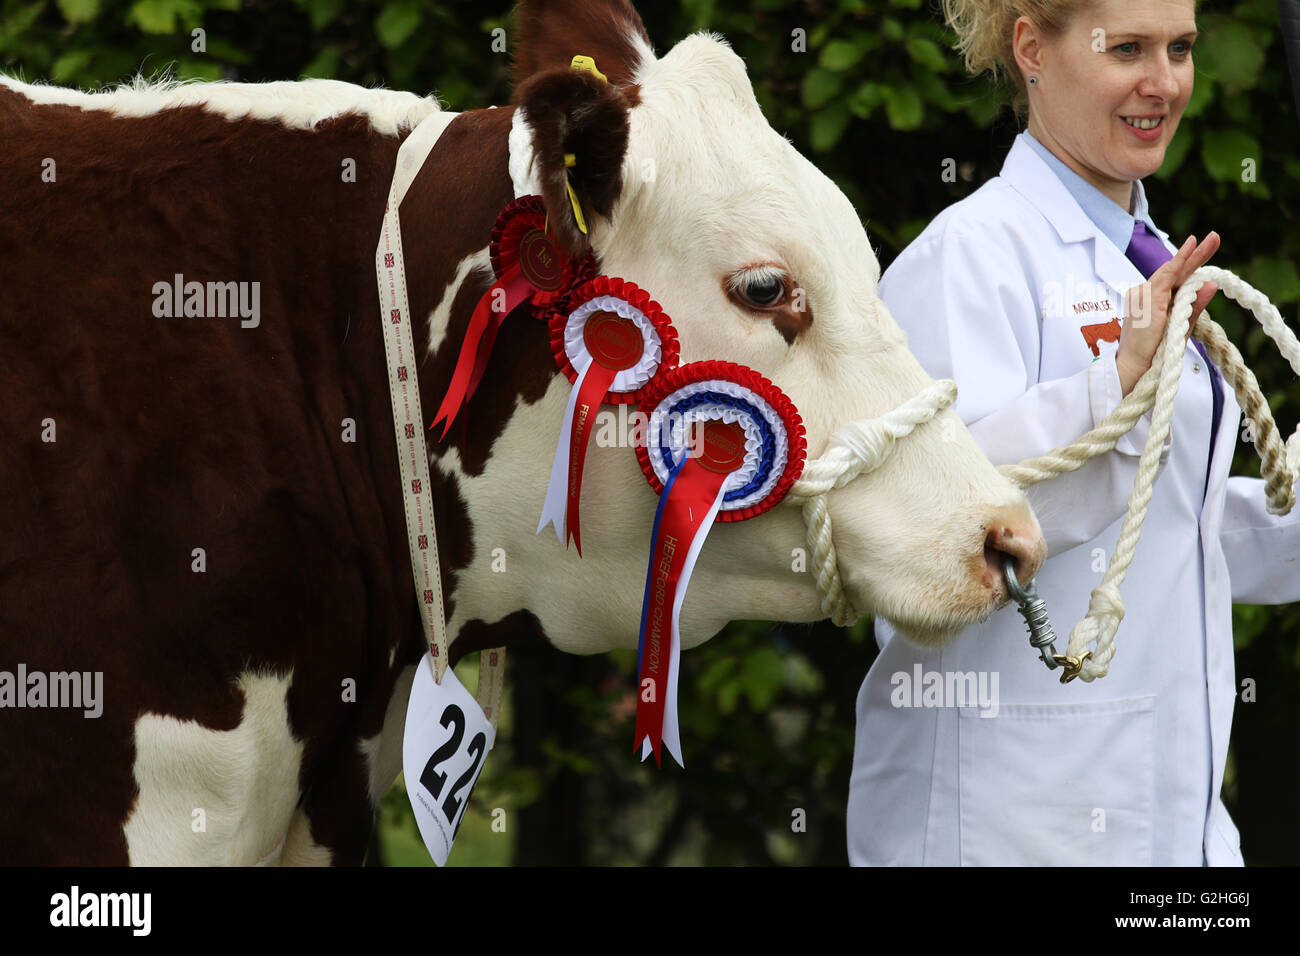 Bywell, England - May 30, 2016: Champion Hereford cow at the Northumberland County Show at Bywell in Northumberland, - Stock Image